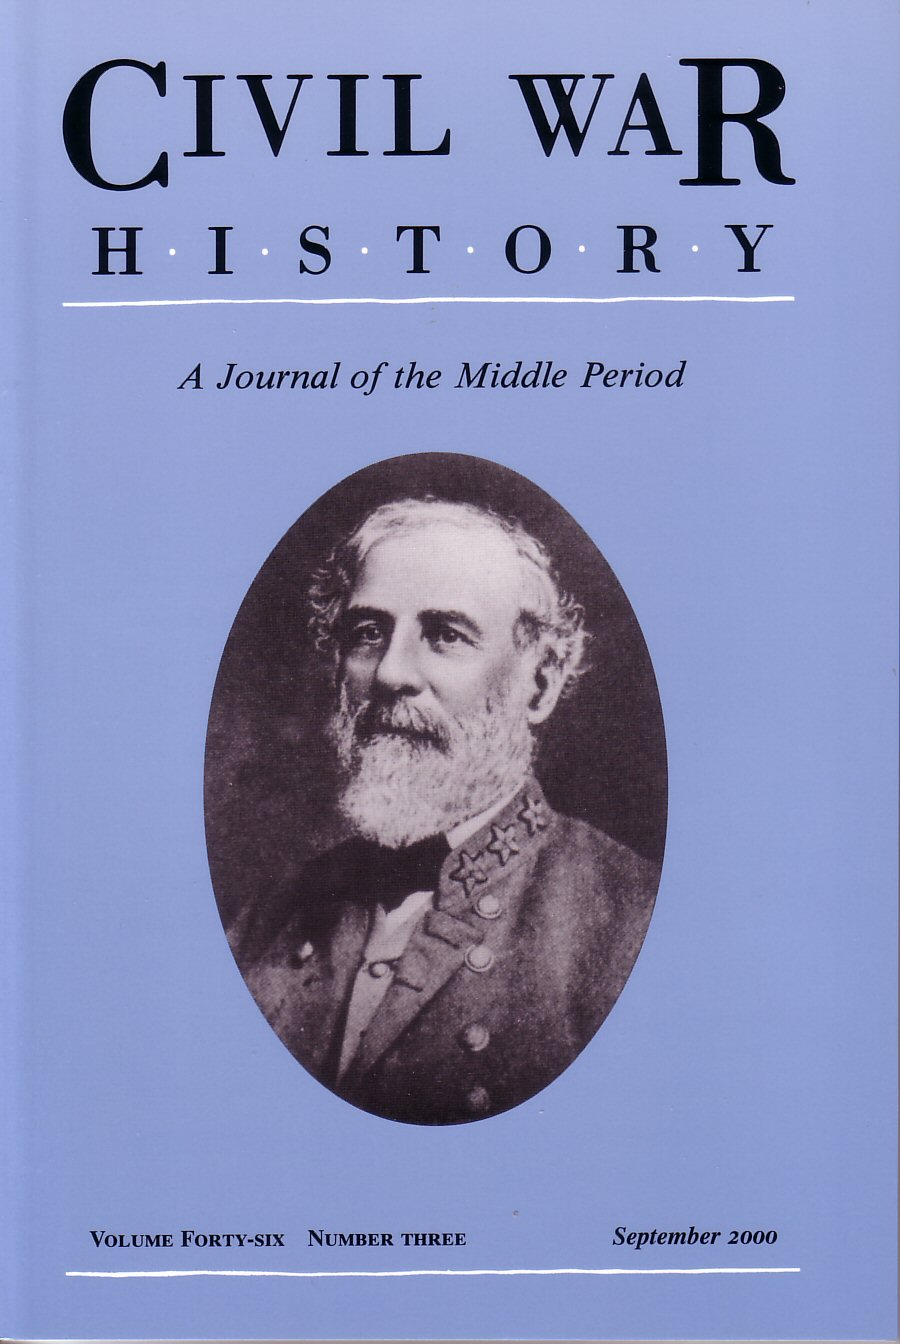 Civil War History, Volume 46, Number 3 (September 2000)